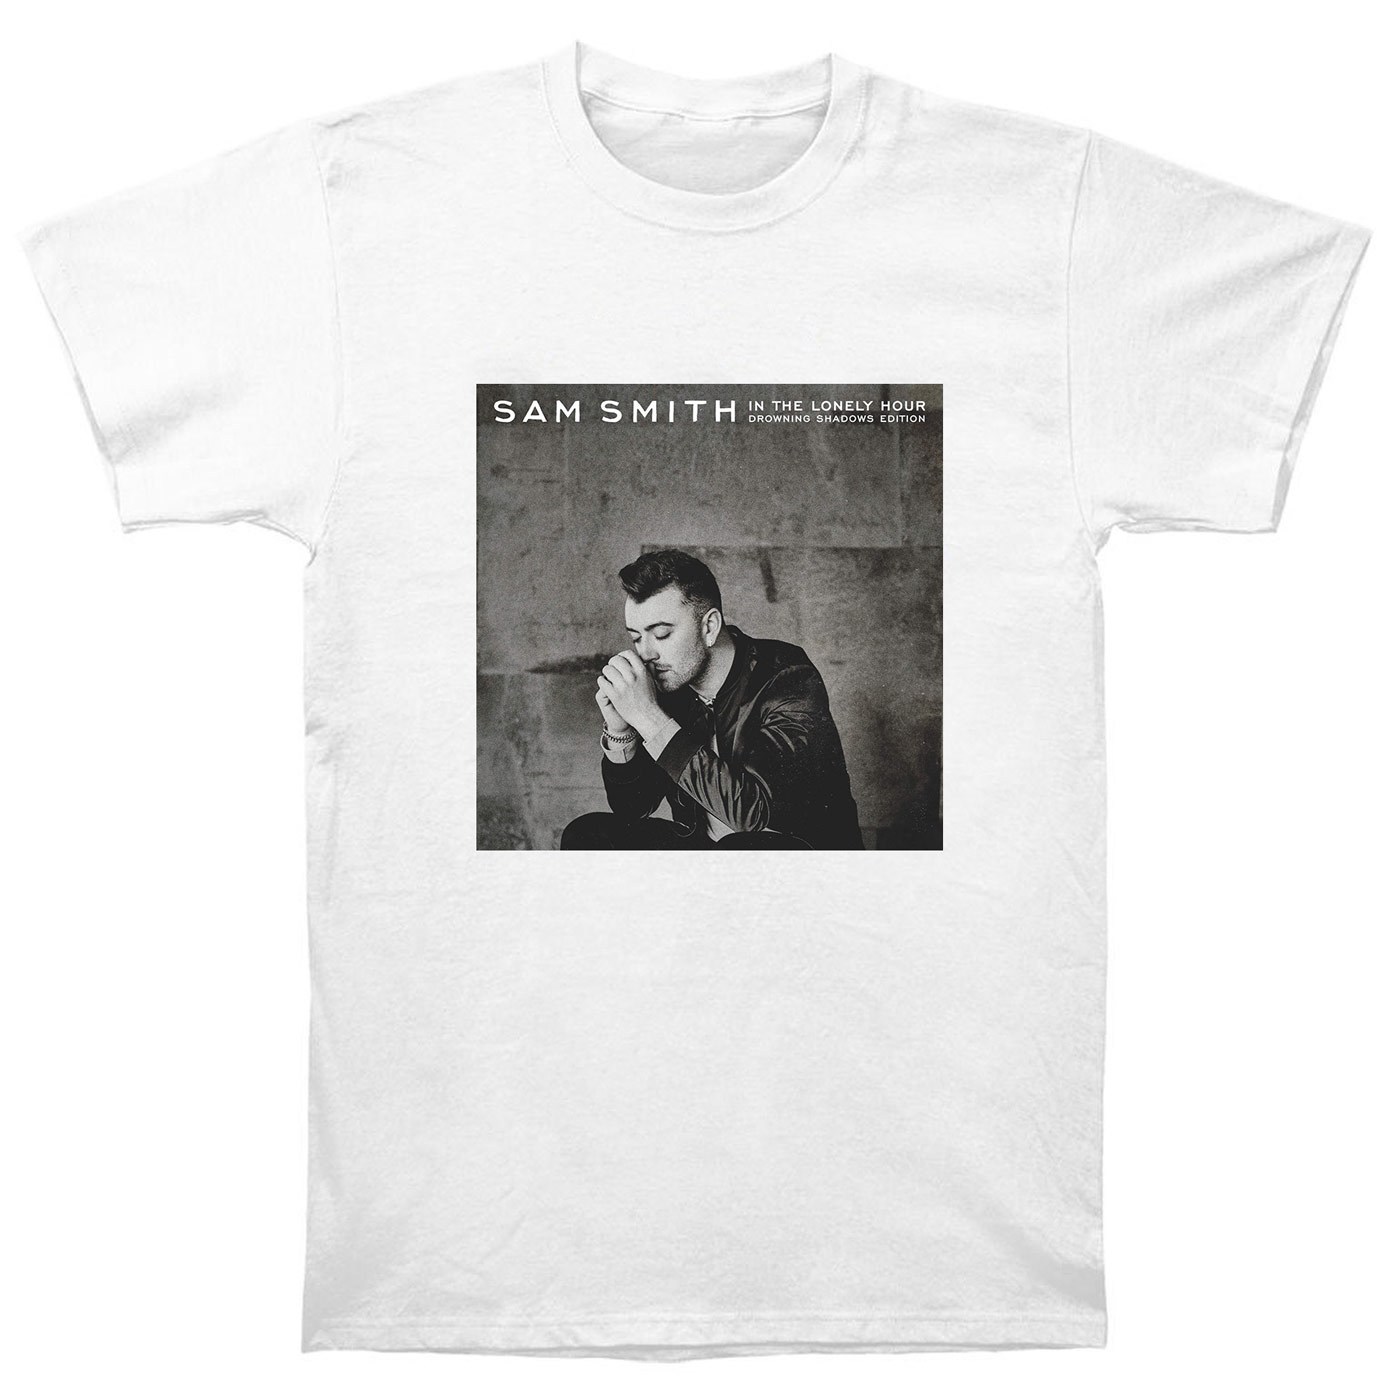 Sam Smith T Shirt Cd In The Lonely Hour Vinyl Poster Drowning Shadows Edition ST2